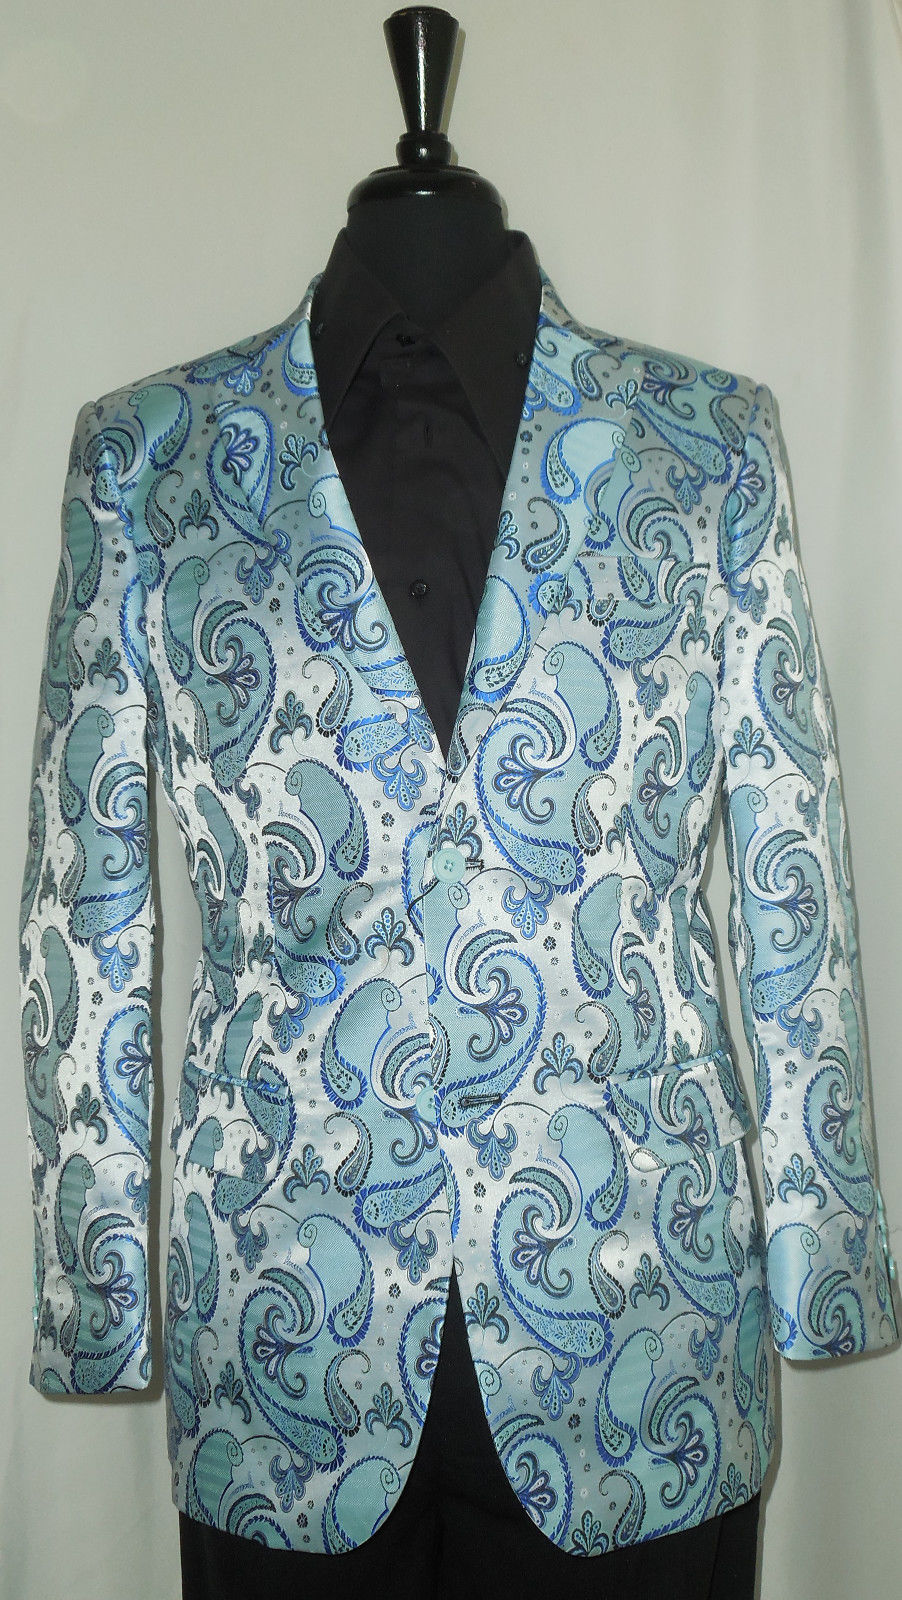 Mens Oceanic Blue Paisley Leonardi Blazer Stylish Fit Great w/ Jeans Style 860 - Nader Fashion Las Vegas